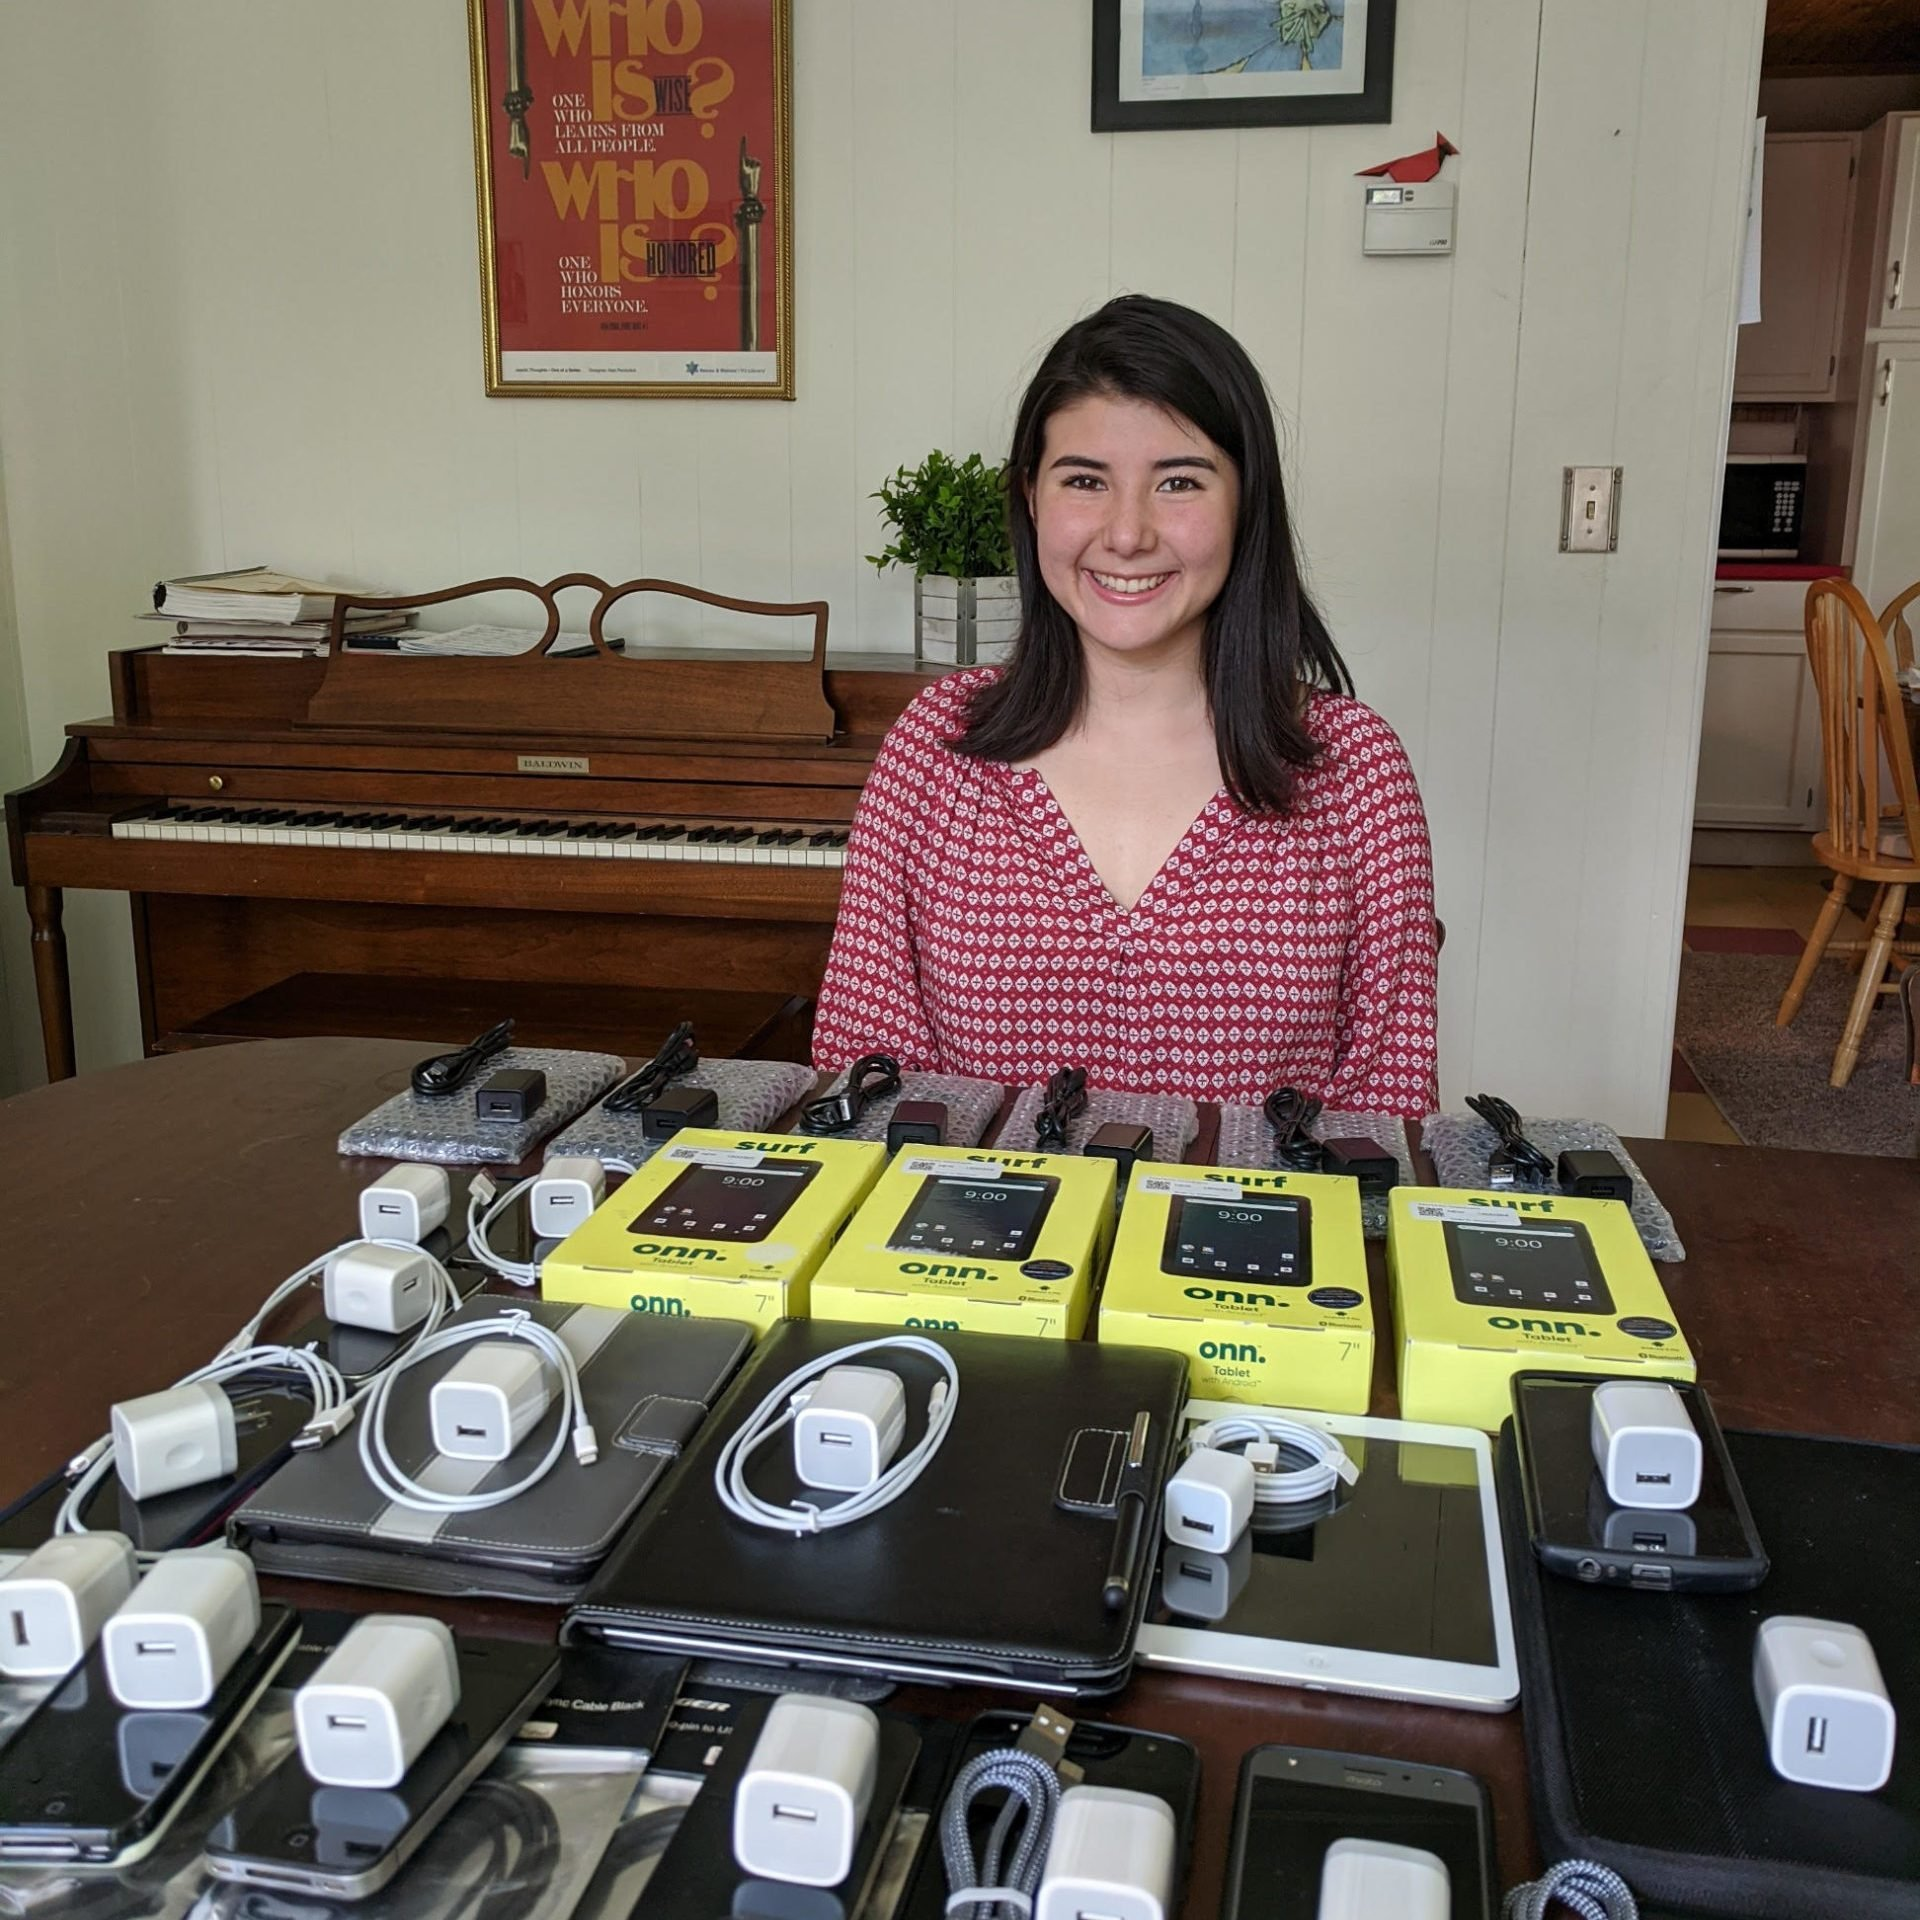 lia rubel posing with an array of collected devices